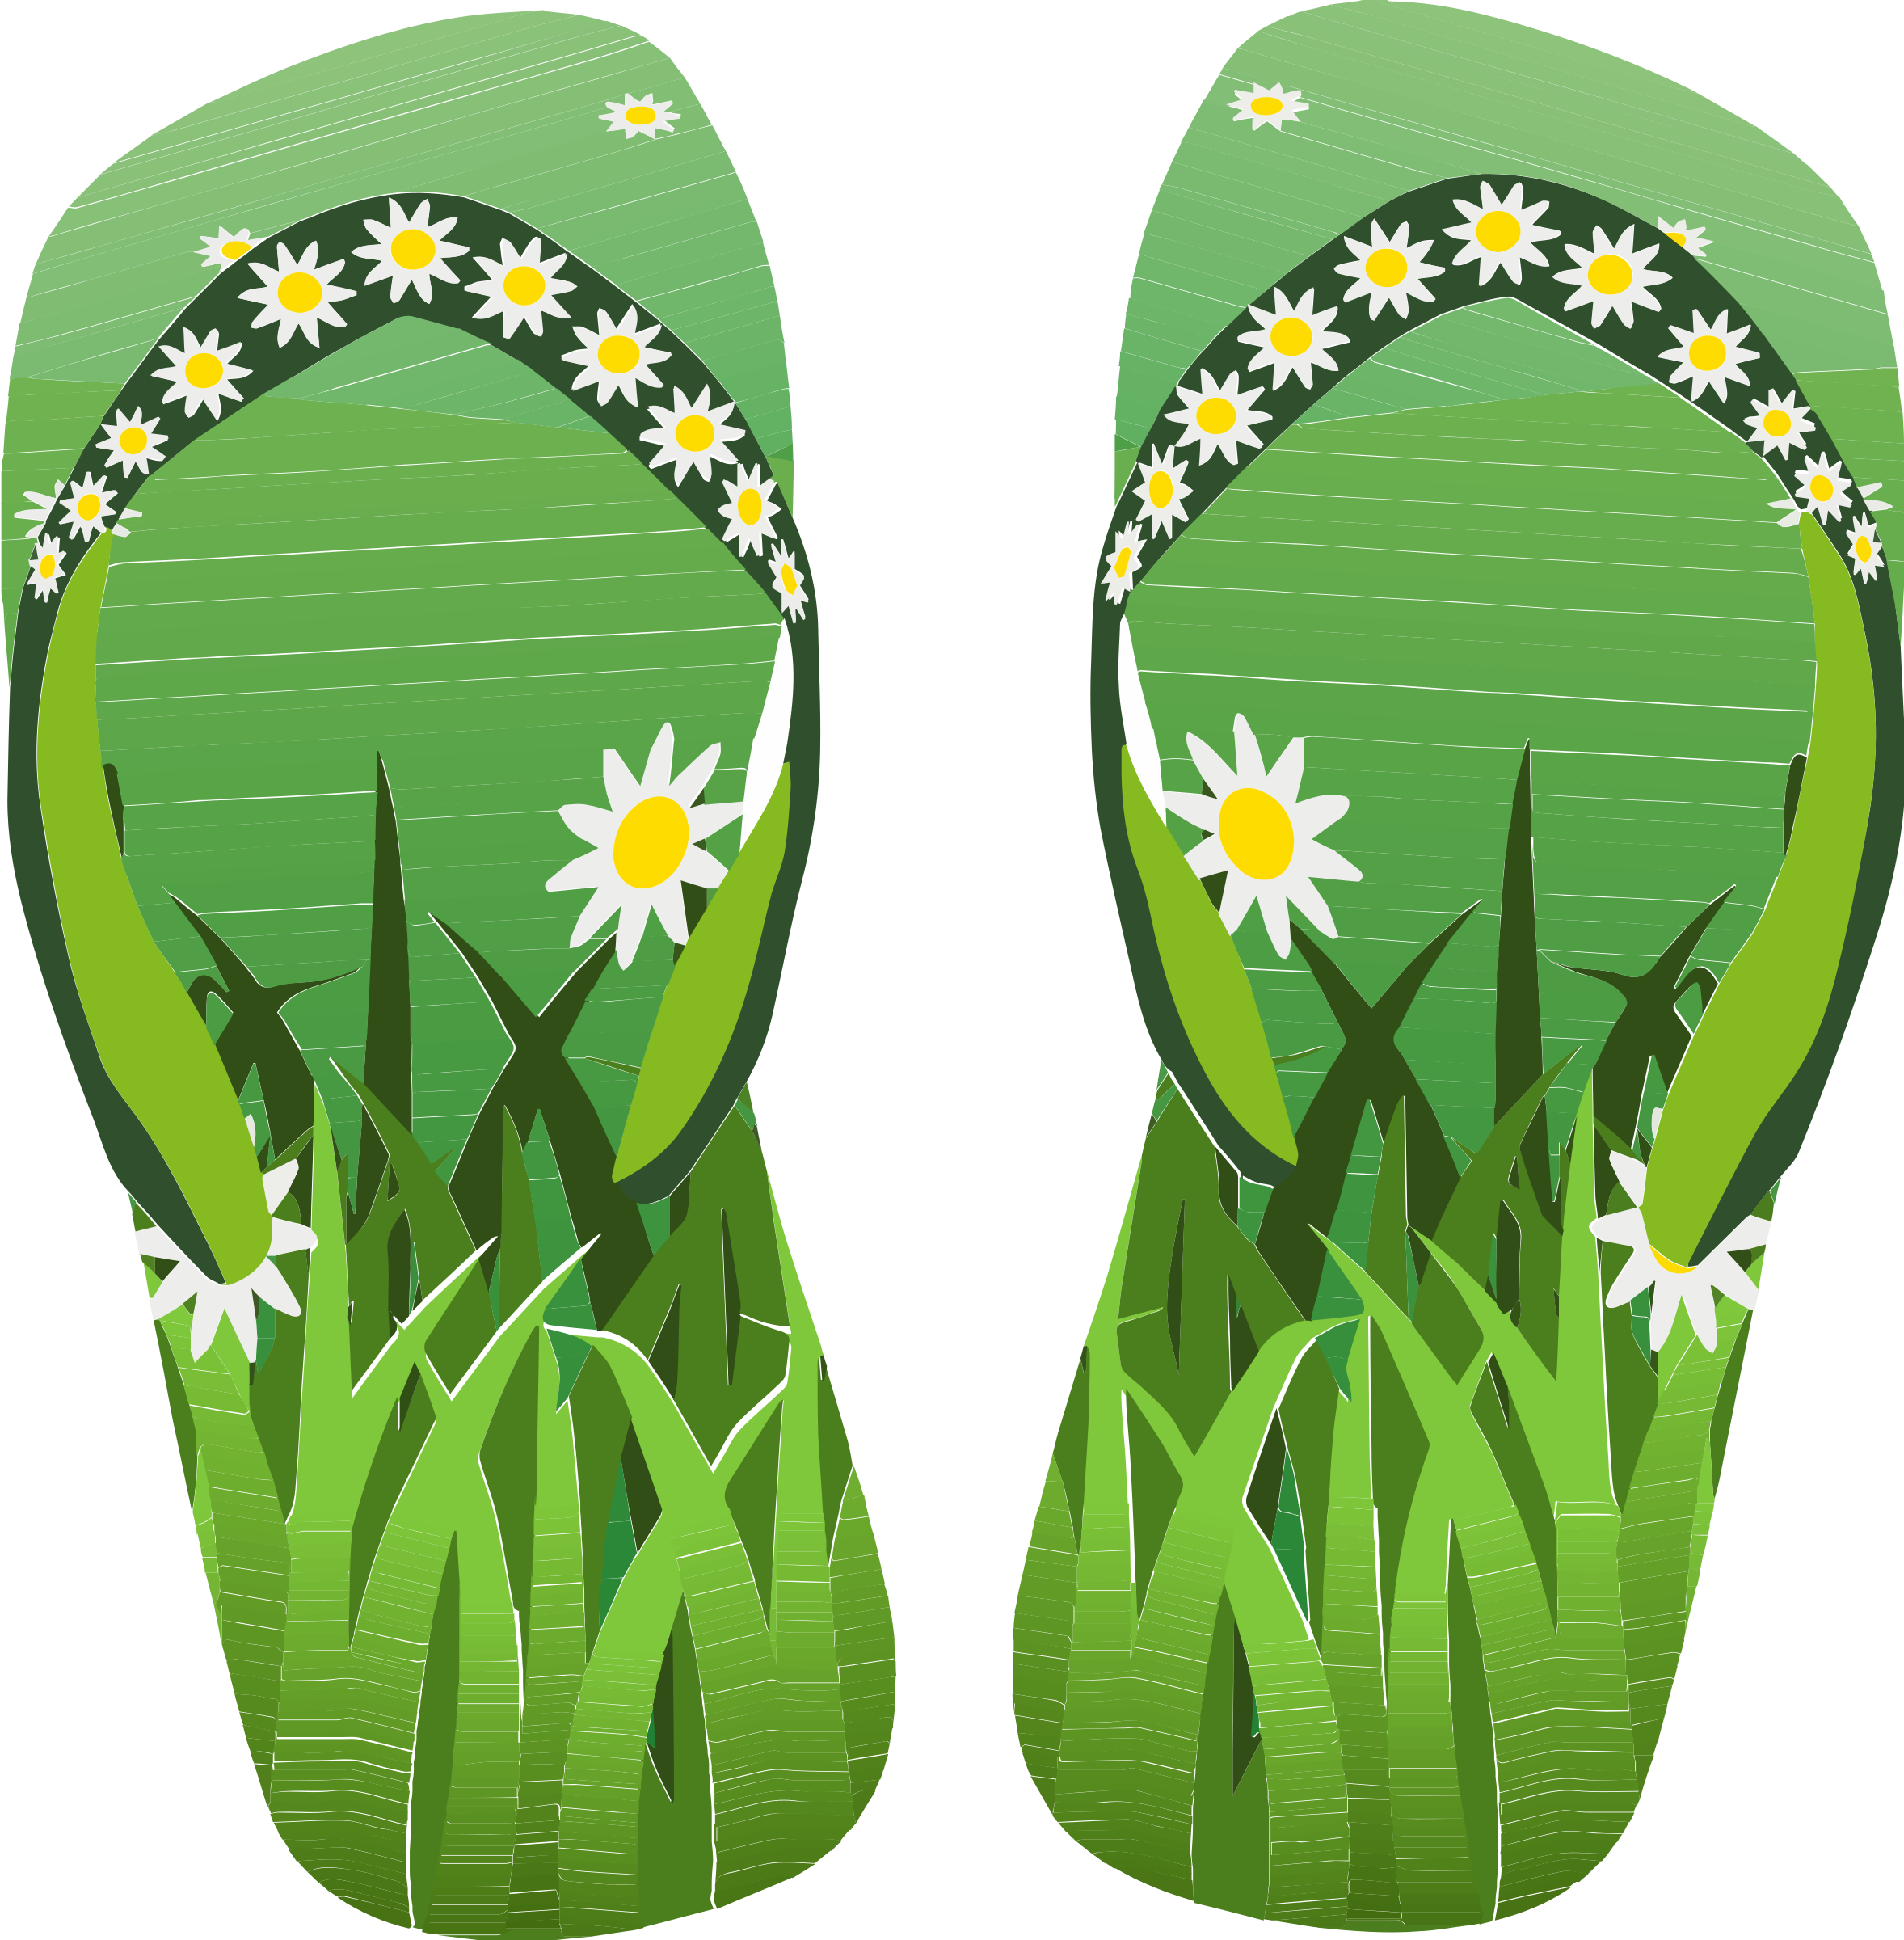 Thong Green With Grass and Flowers Remake by uscustomstickers